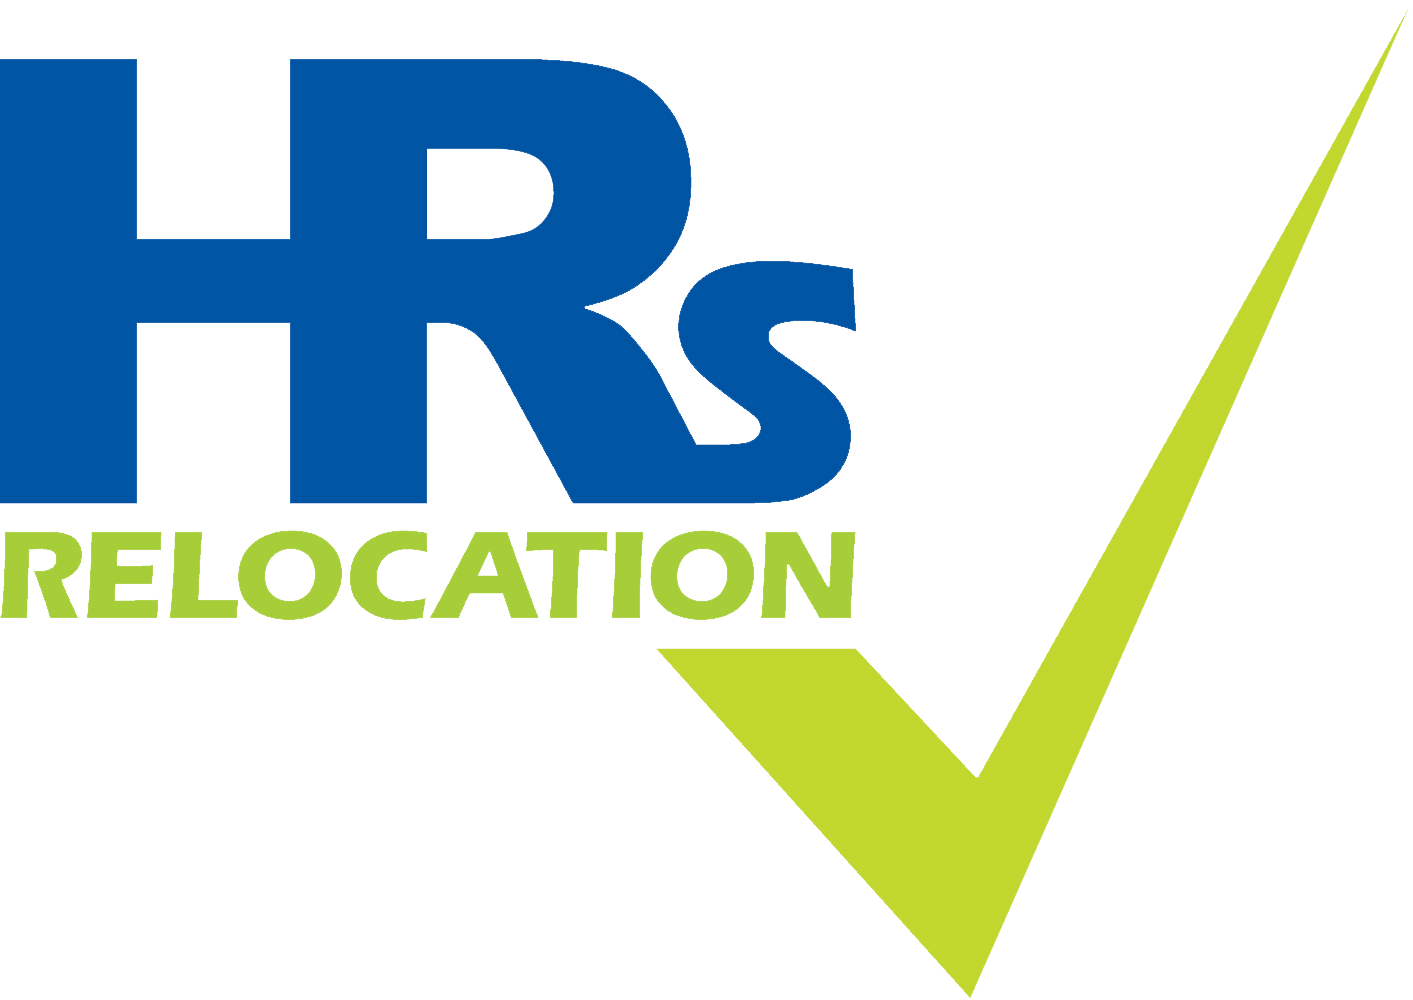 MERGE Relocation & Outsourcing